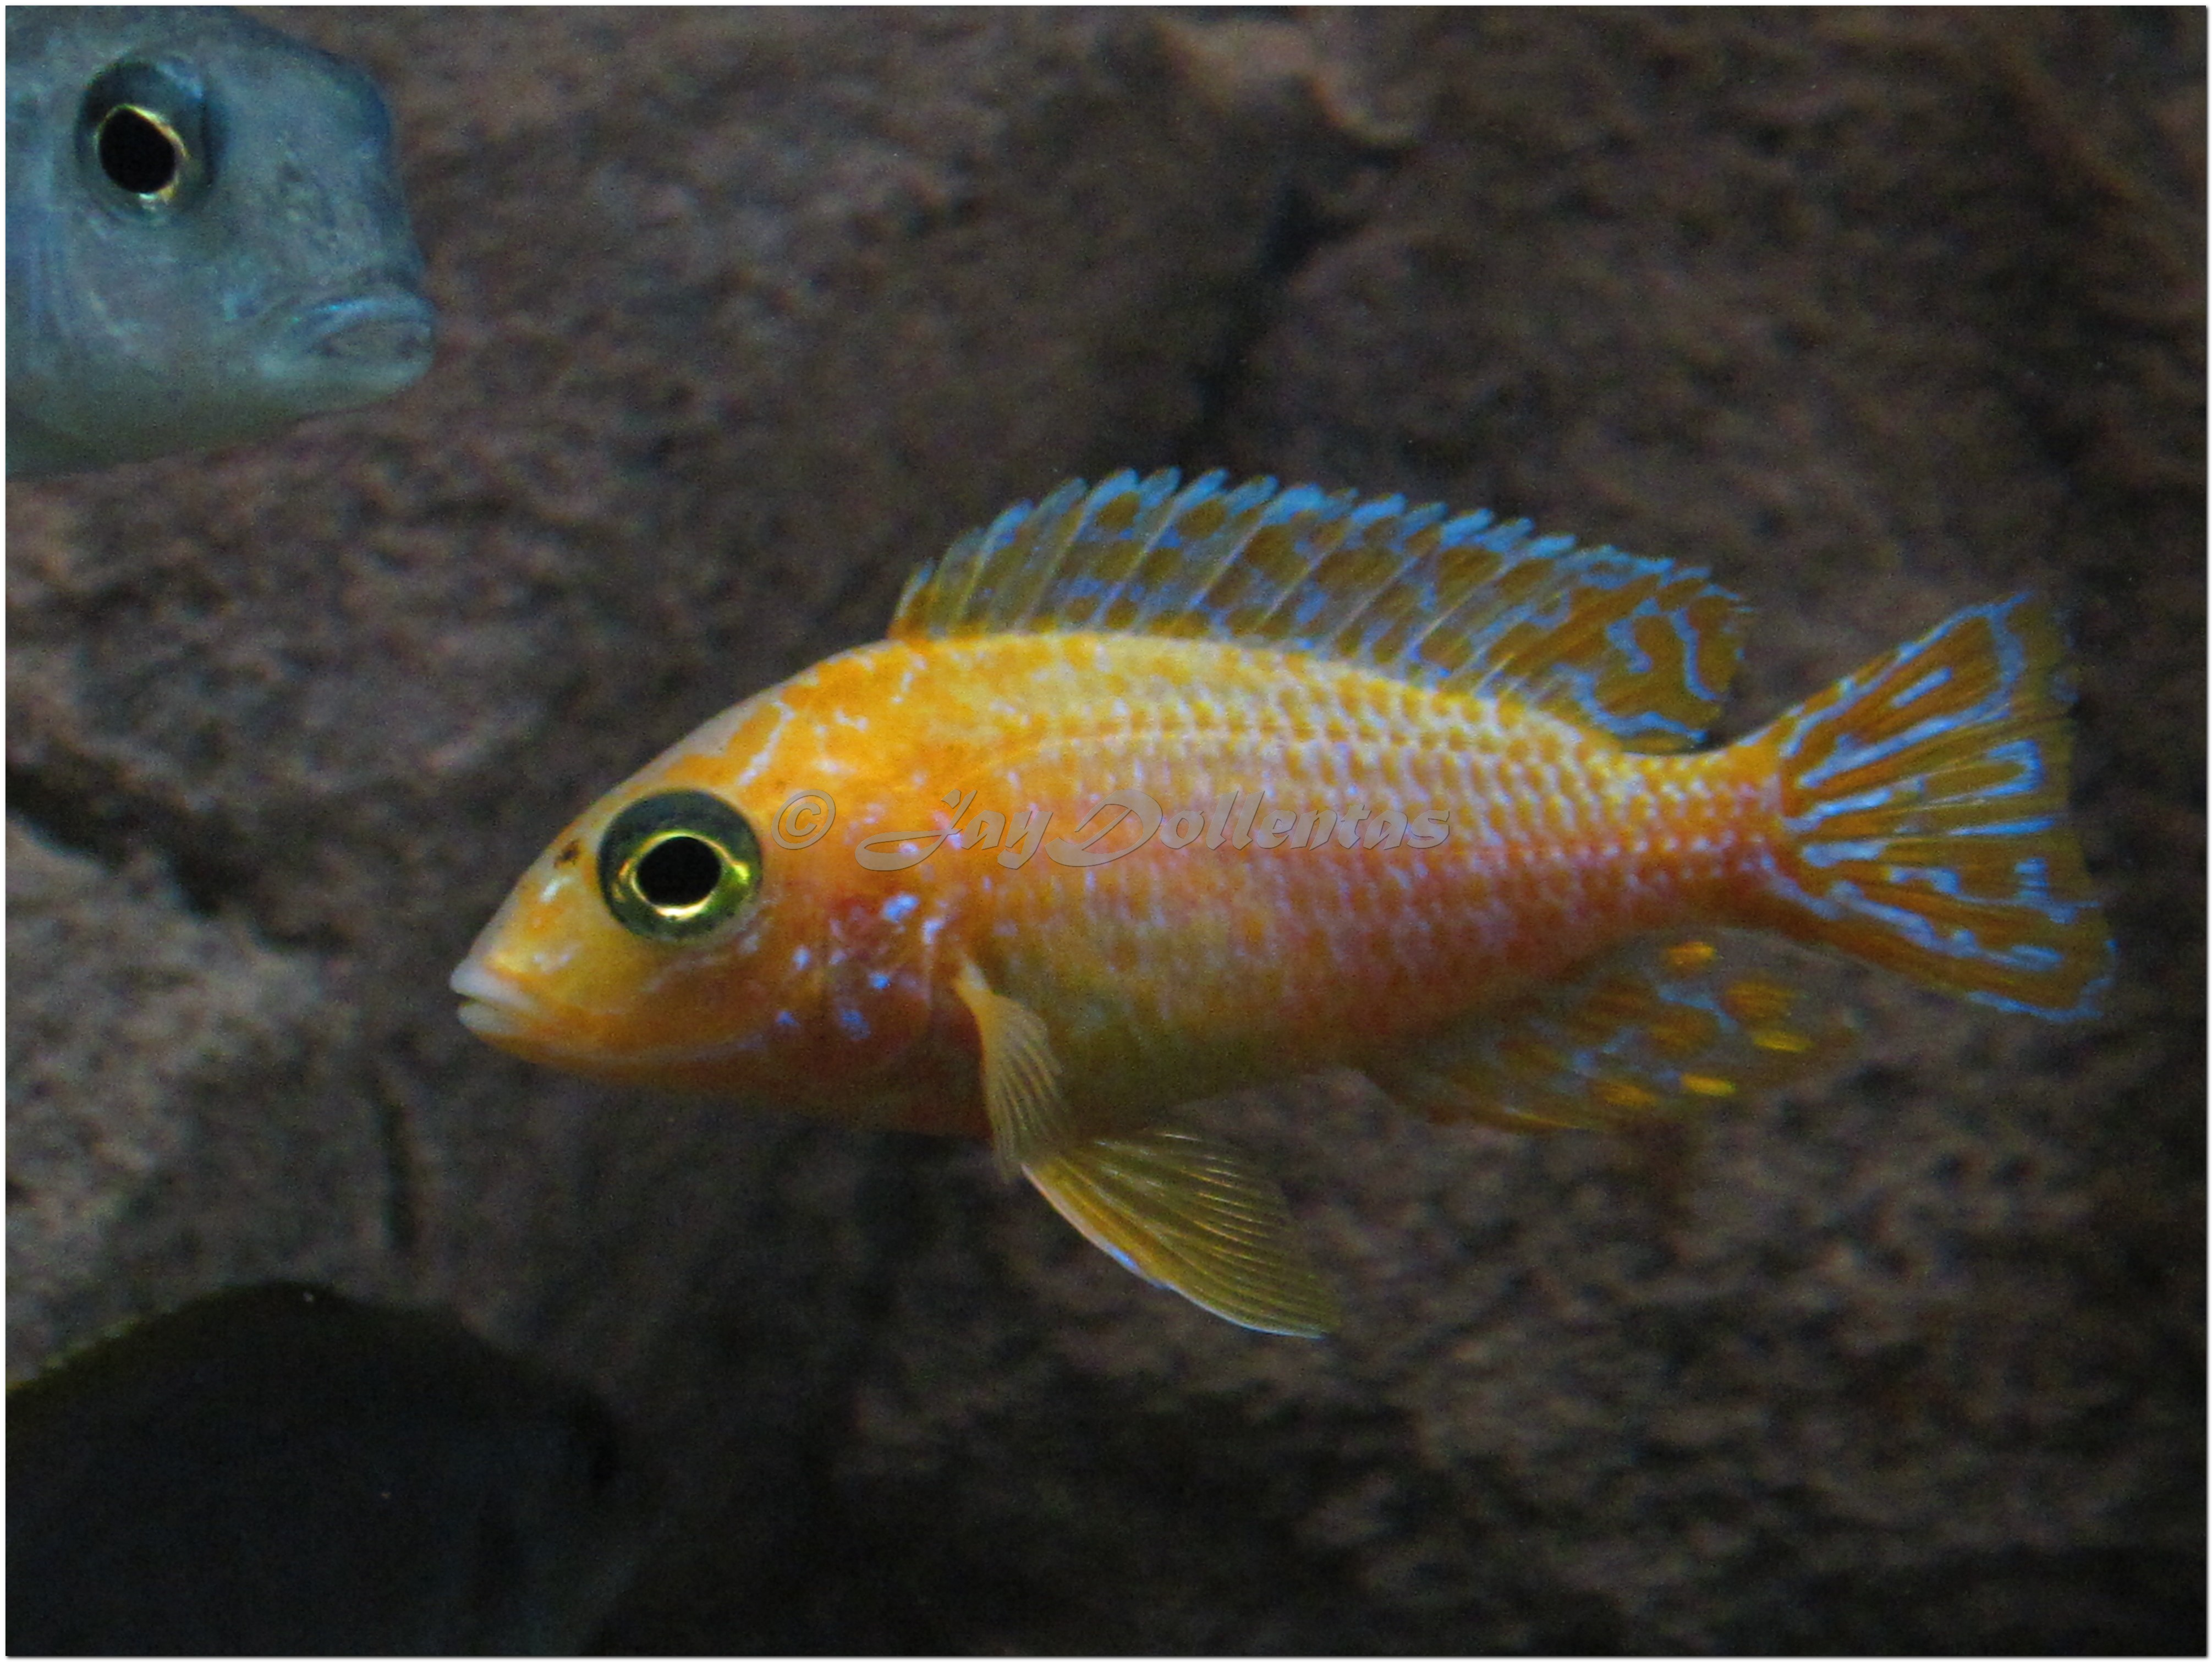 cichlids.com: new Strawberry peacock